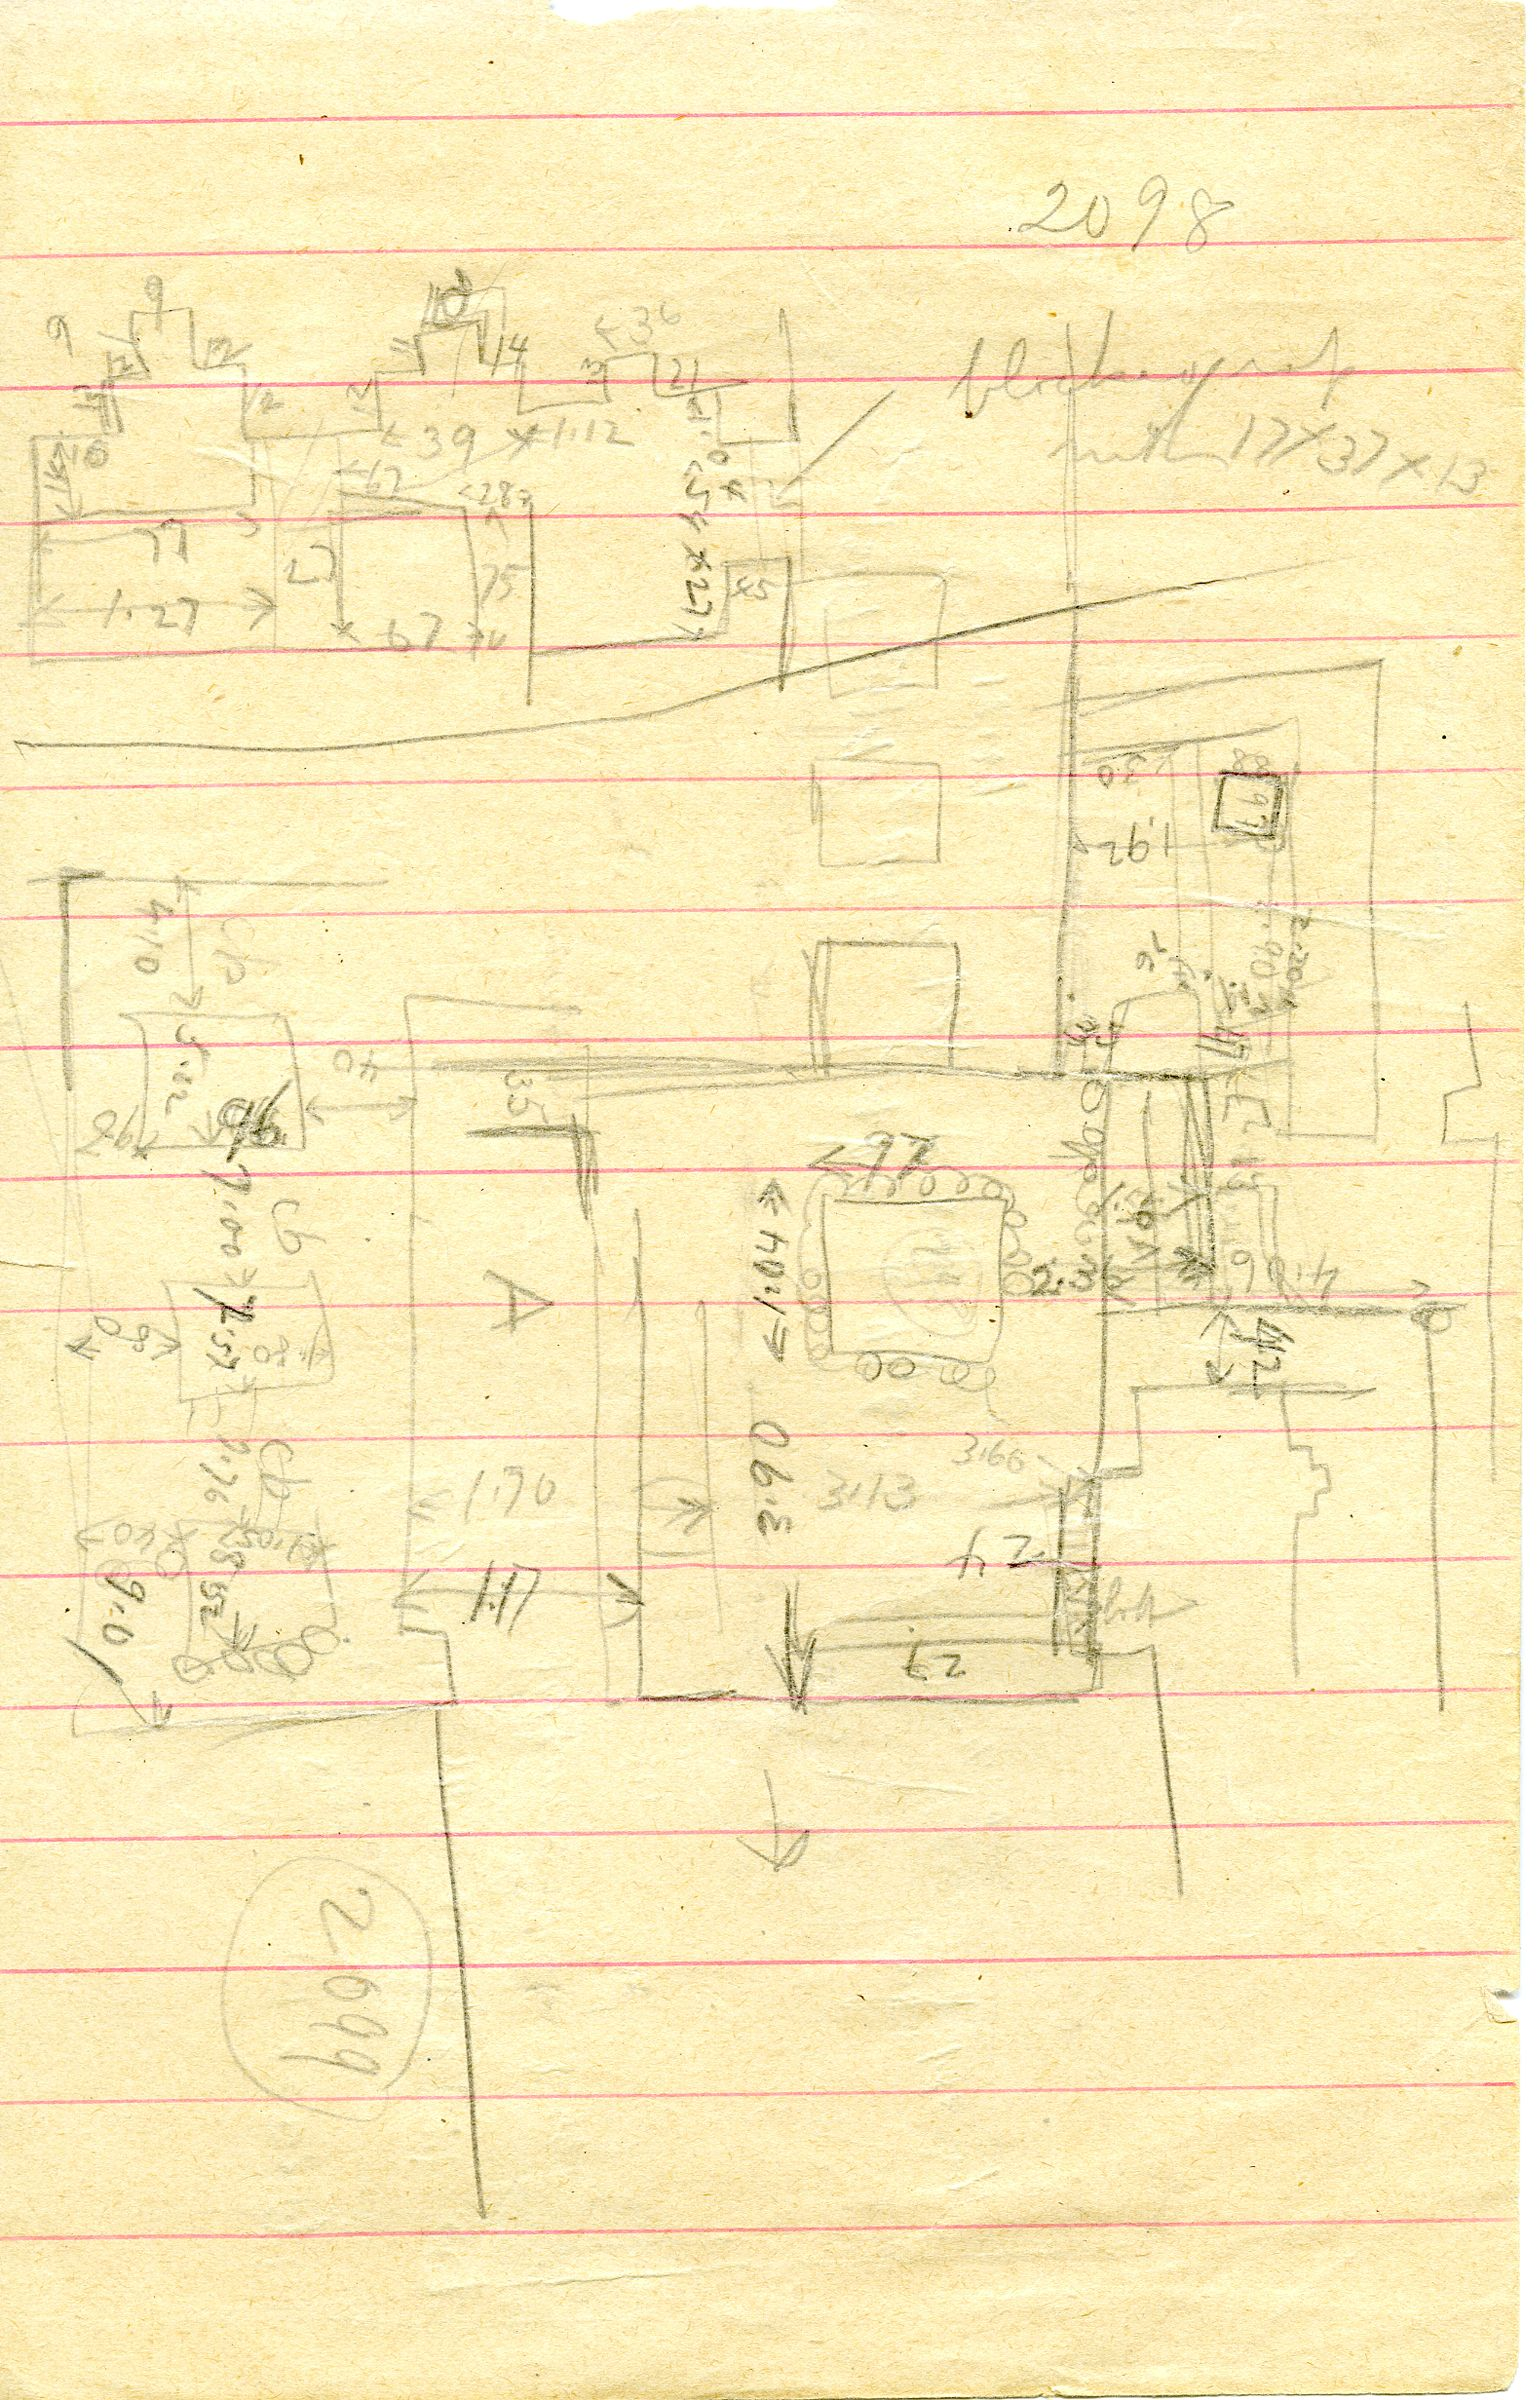 Maps and plans: G 3098, Sketch plans